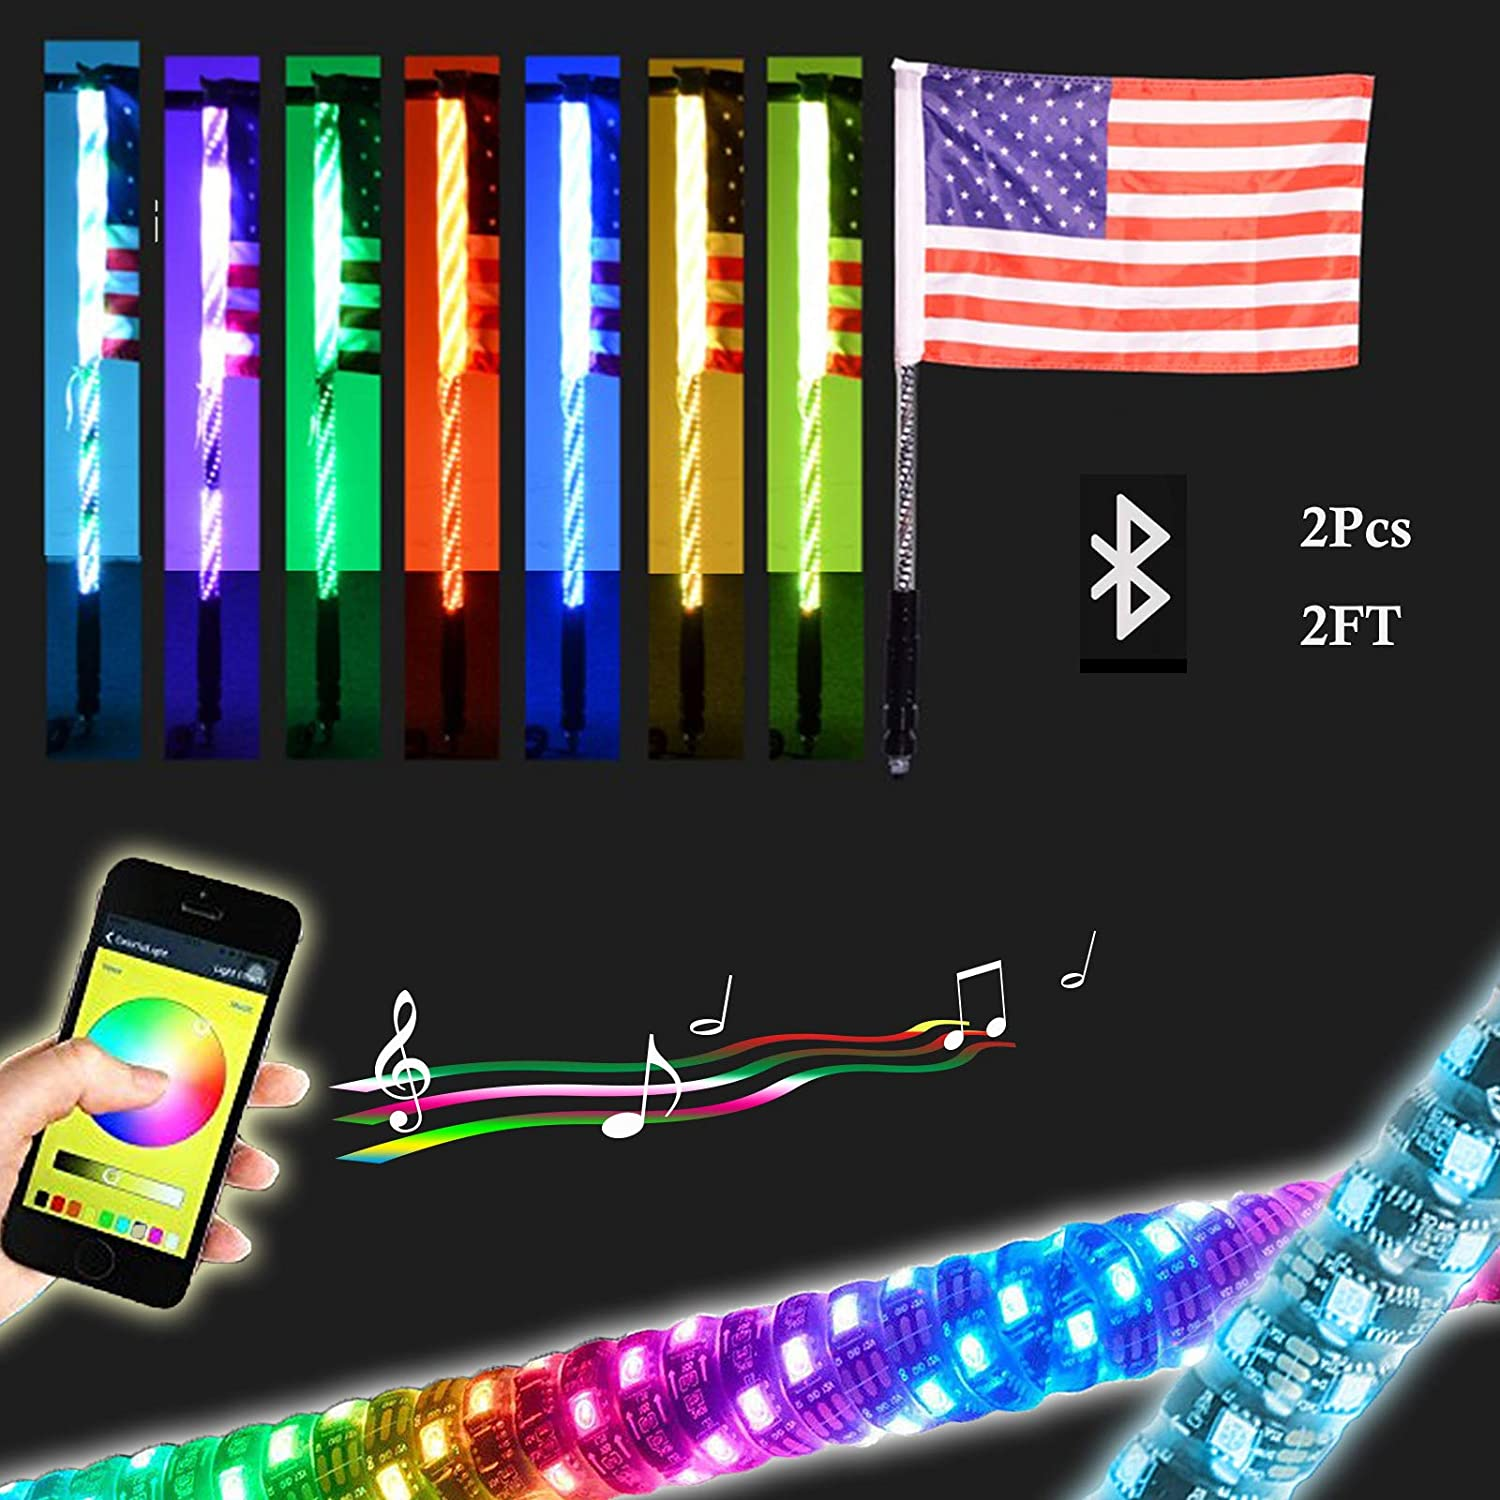 2Pcs 2FT LED Whip Light with Bluetooth Control -360/°Spiraling Rising Dancing flag Offroad Warning Lighted LED Whips LED Antenna Light for UTV Off Road Truck Sand Buggy Dune Jeep ATV RZ